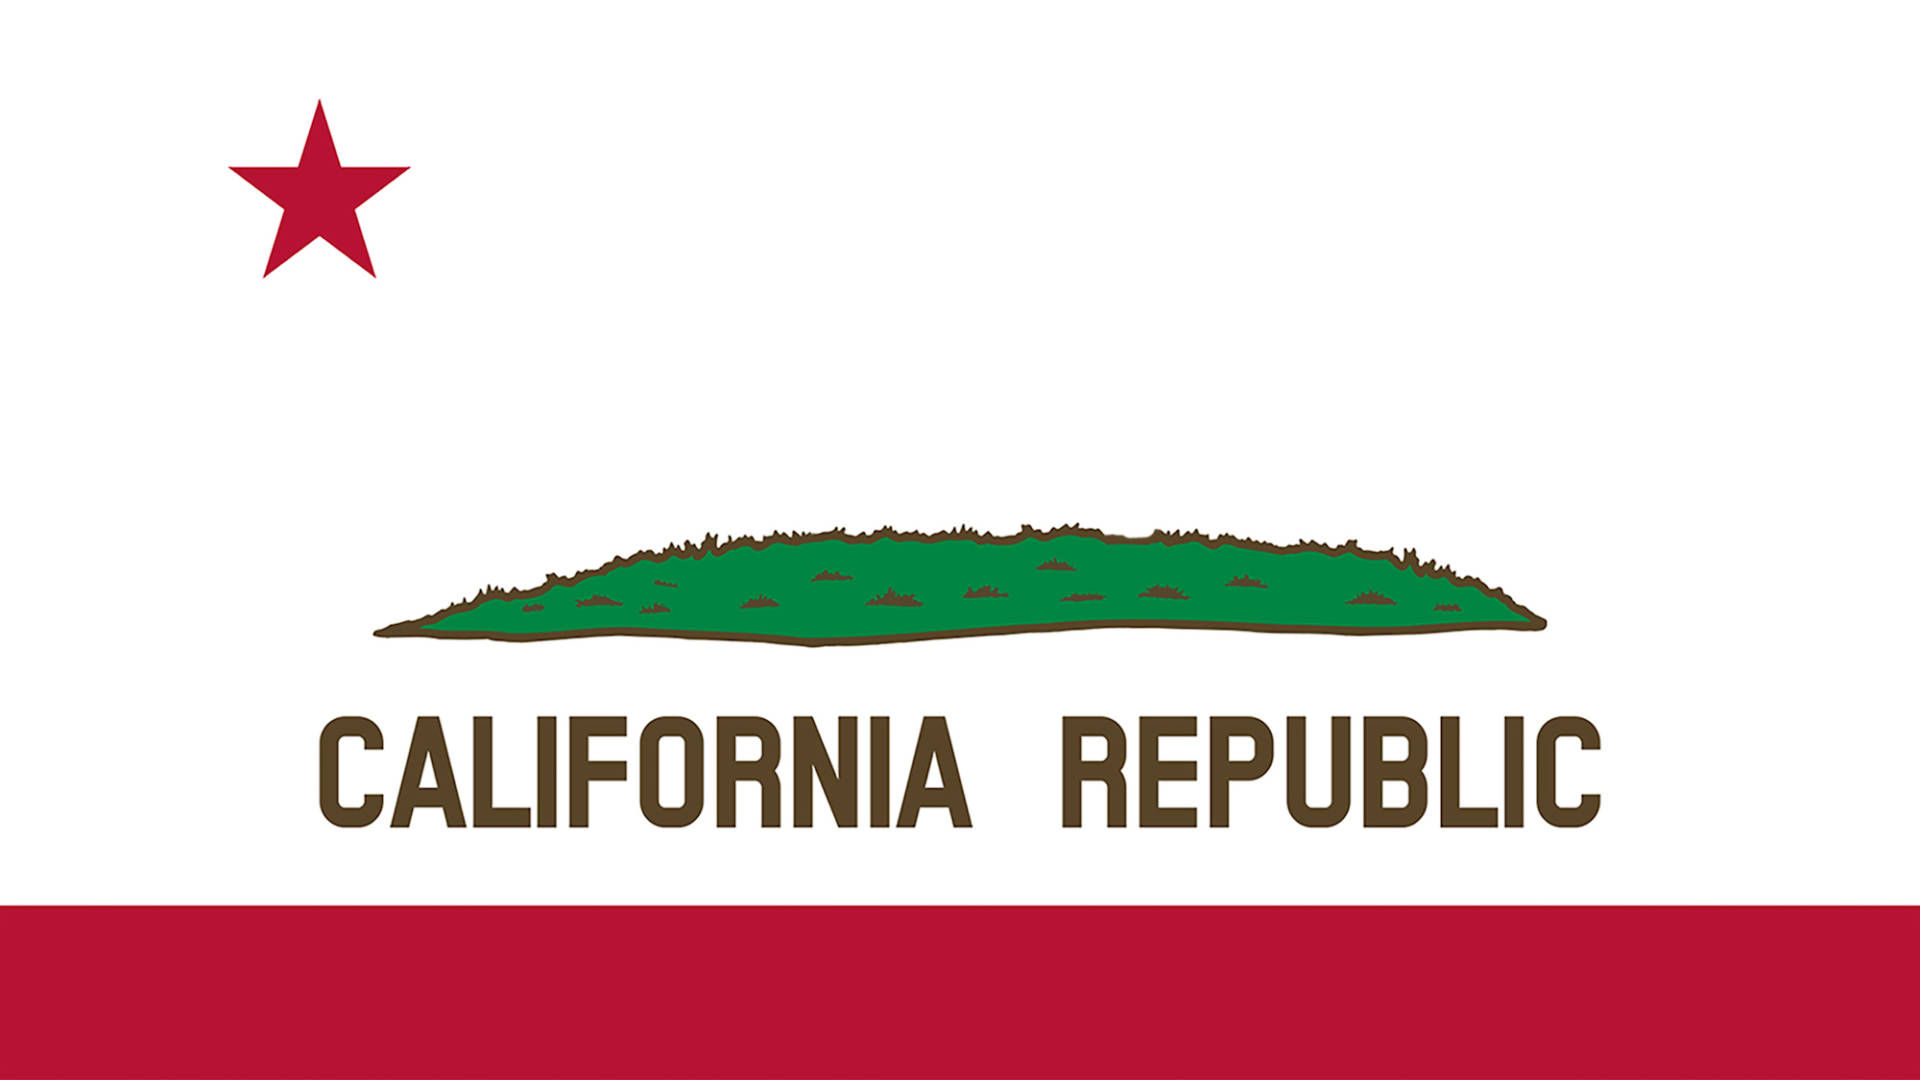 Advocates hope that their bear-less flag will call attention to the paradox that the state symbol is absent from California.